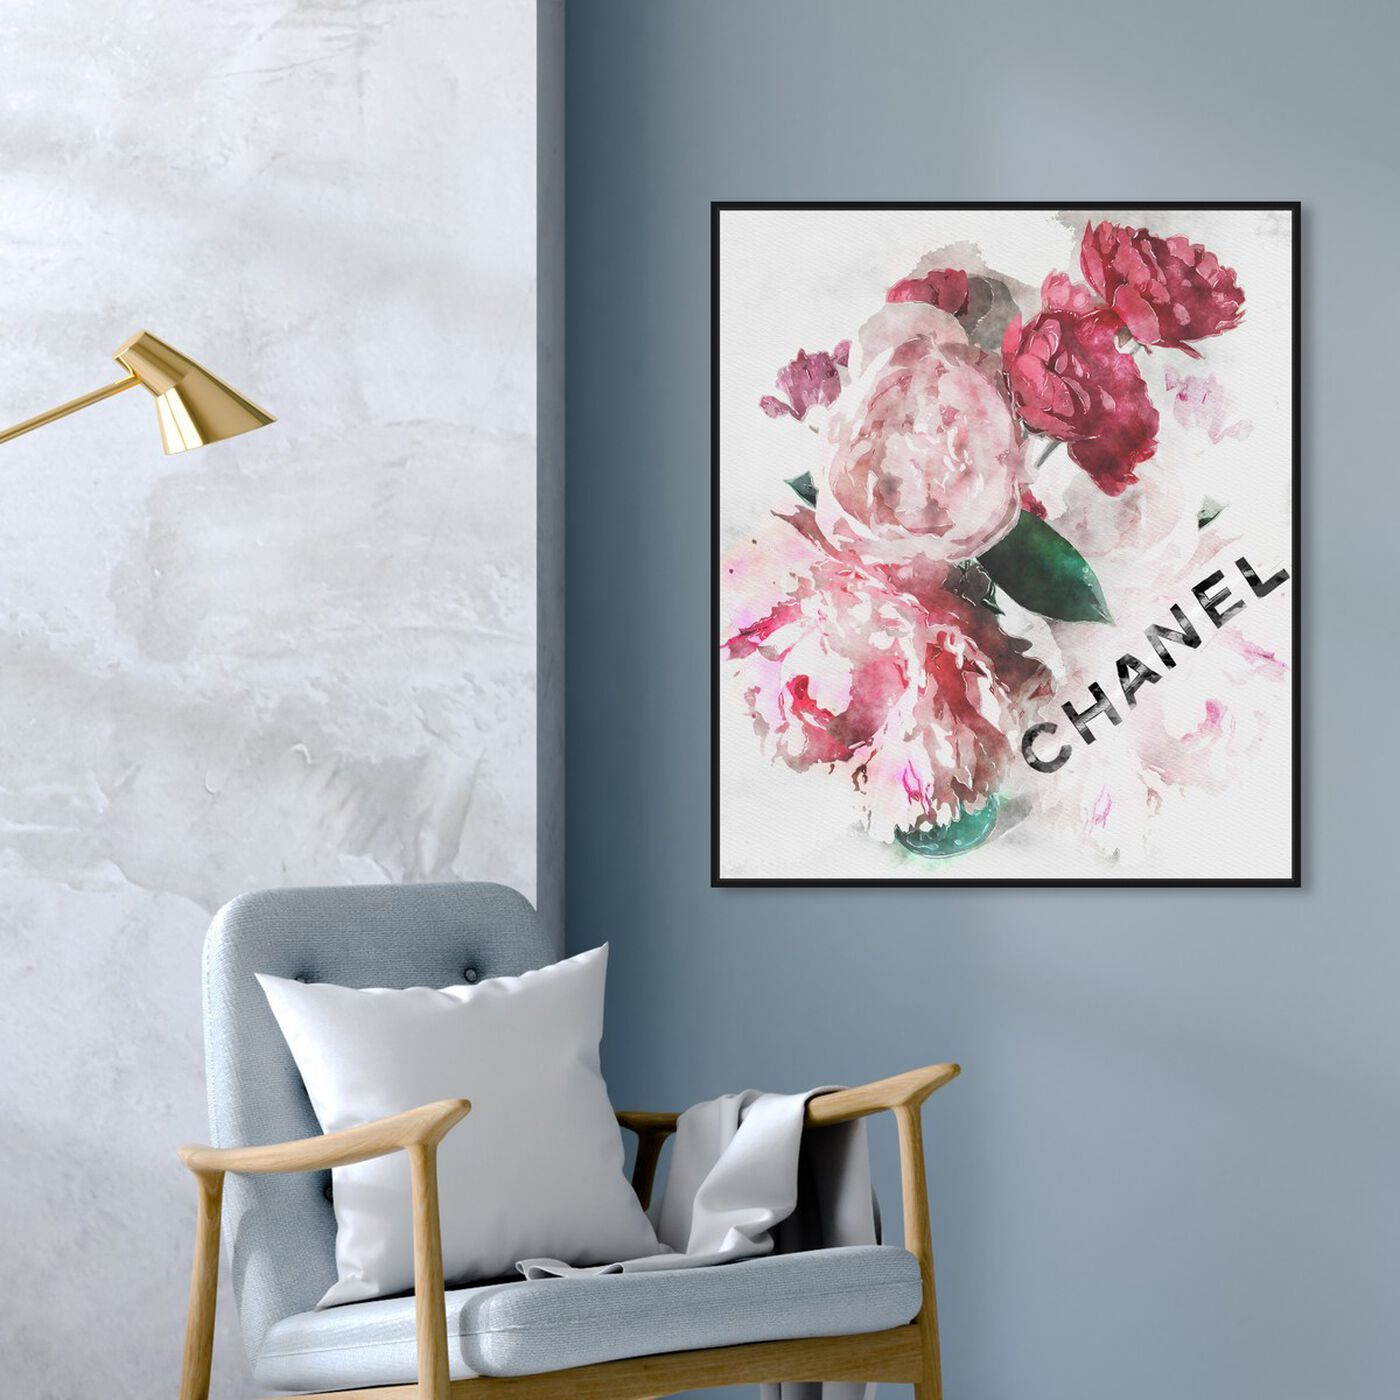 Hanging view of French Peony Vase featuring fashion and glam and fashion lifestyle art.